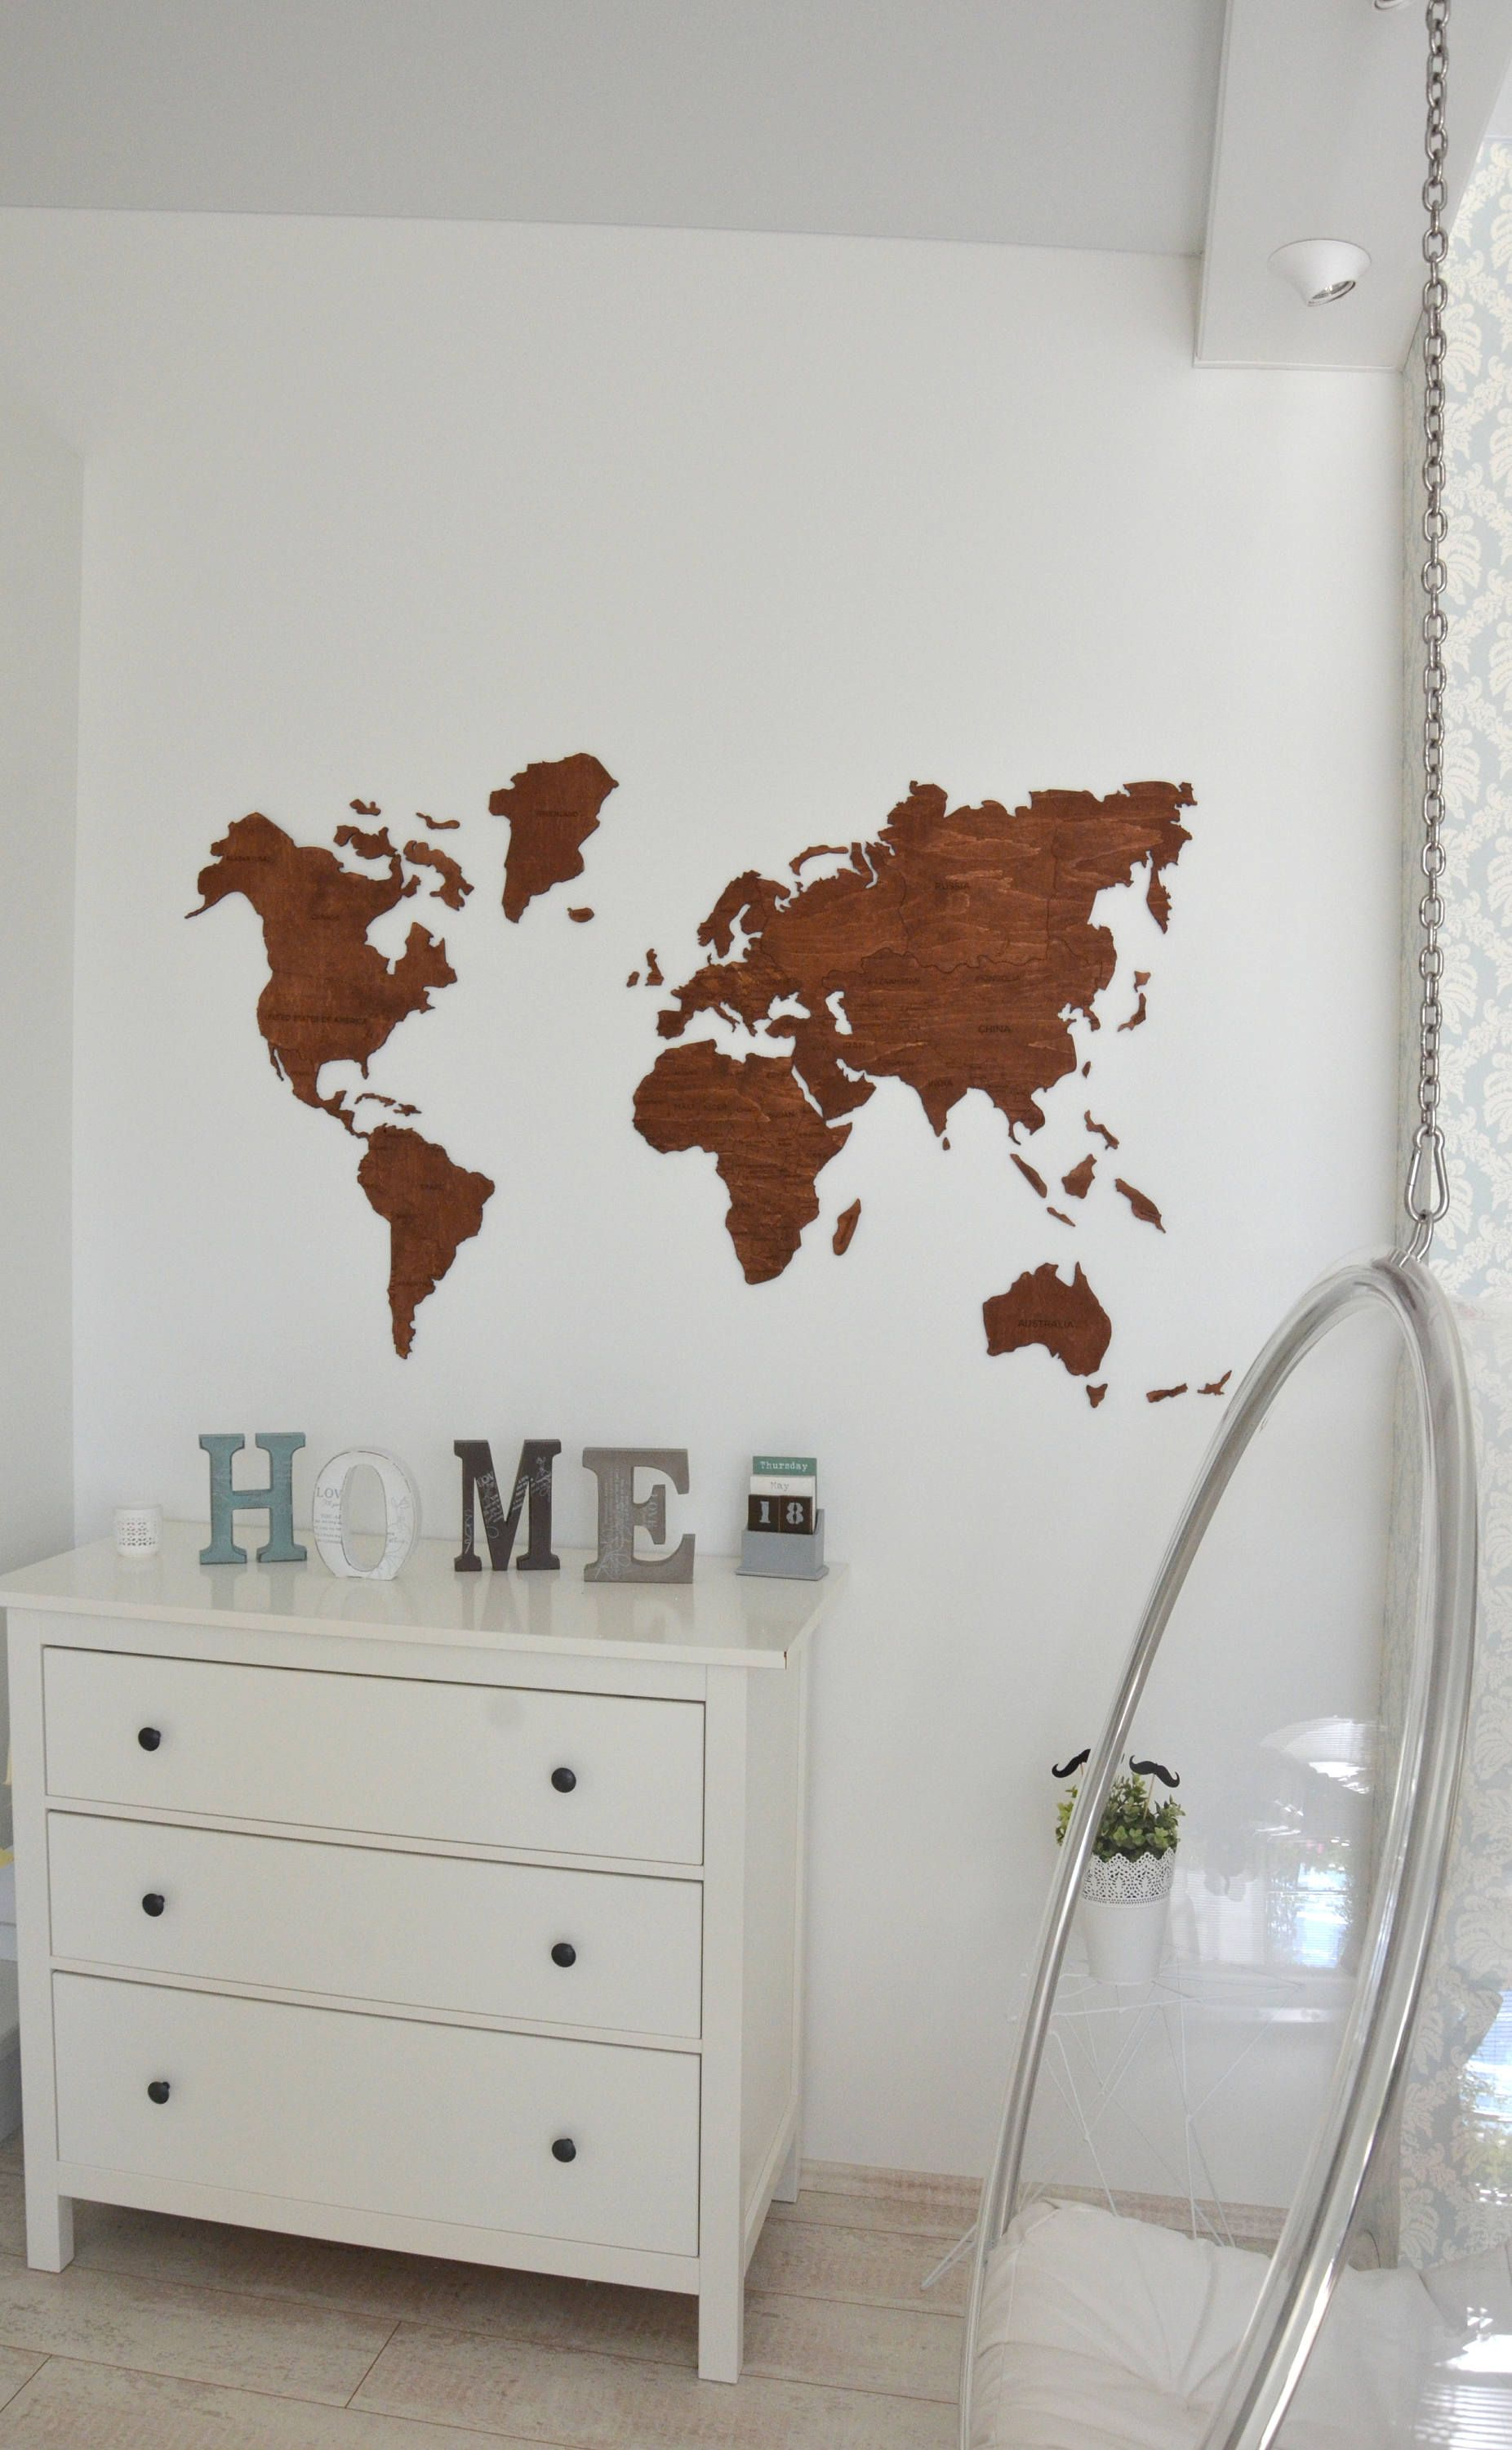 Office wall decor wooden world map of the world canvas large travel office wall decor wooden world map of the world canvas large travel living room rustic housewarming new house home gift for wife father gumiabroncs Images